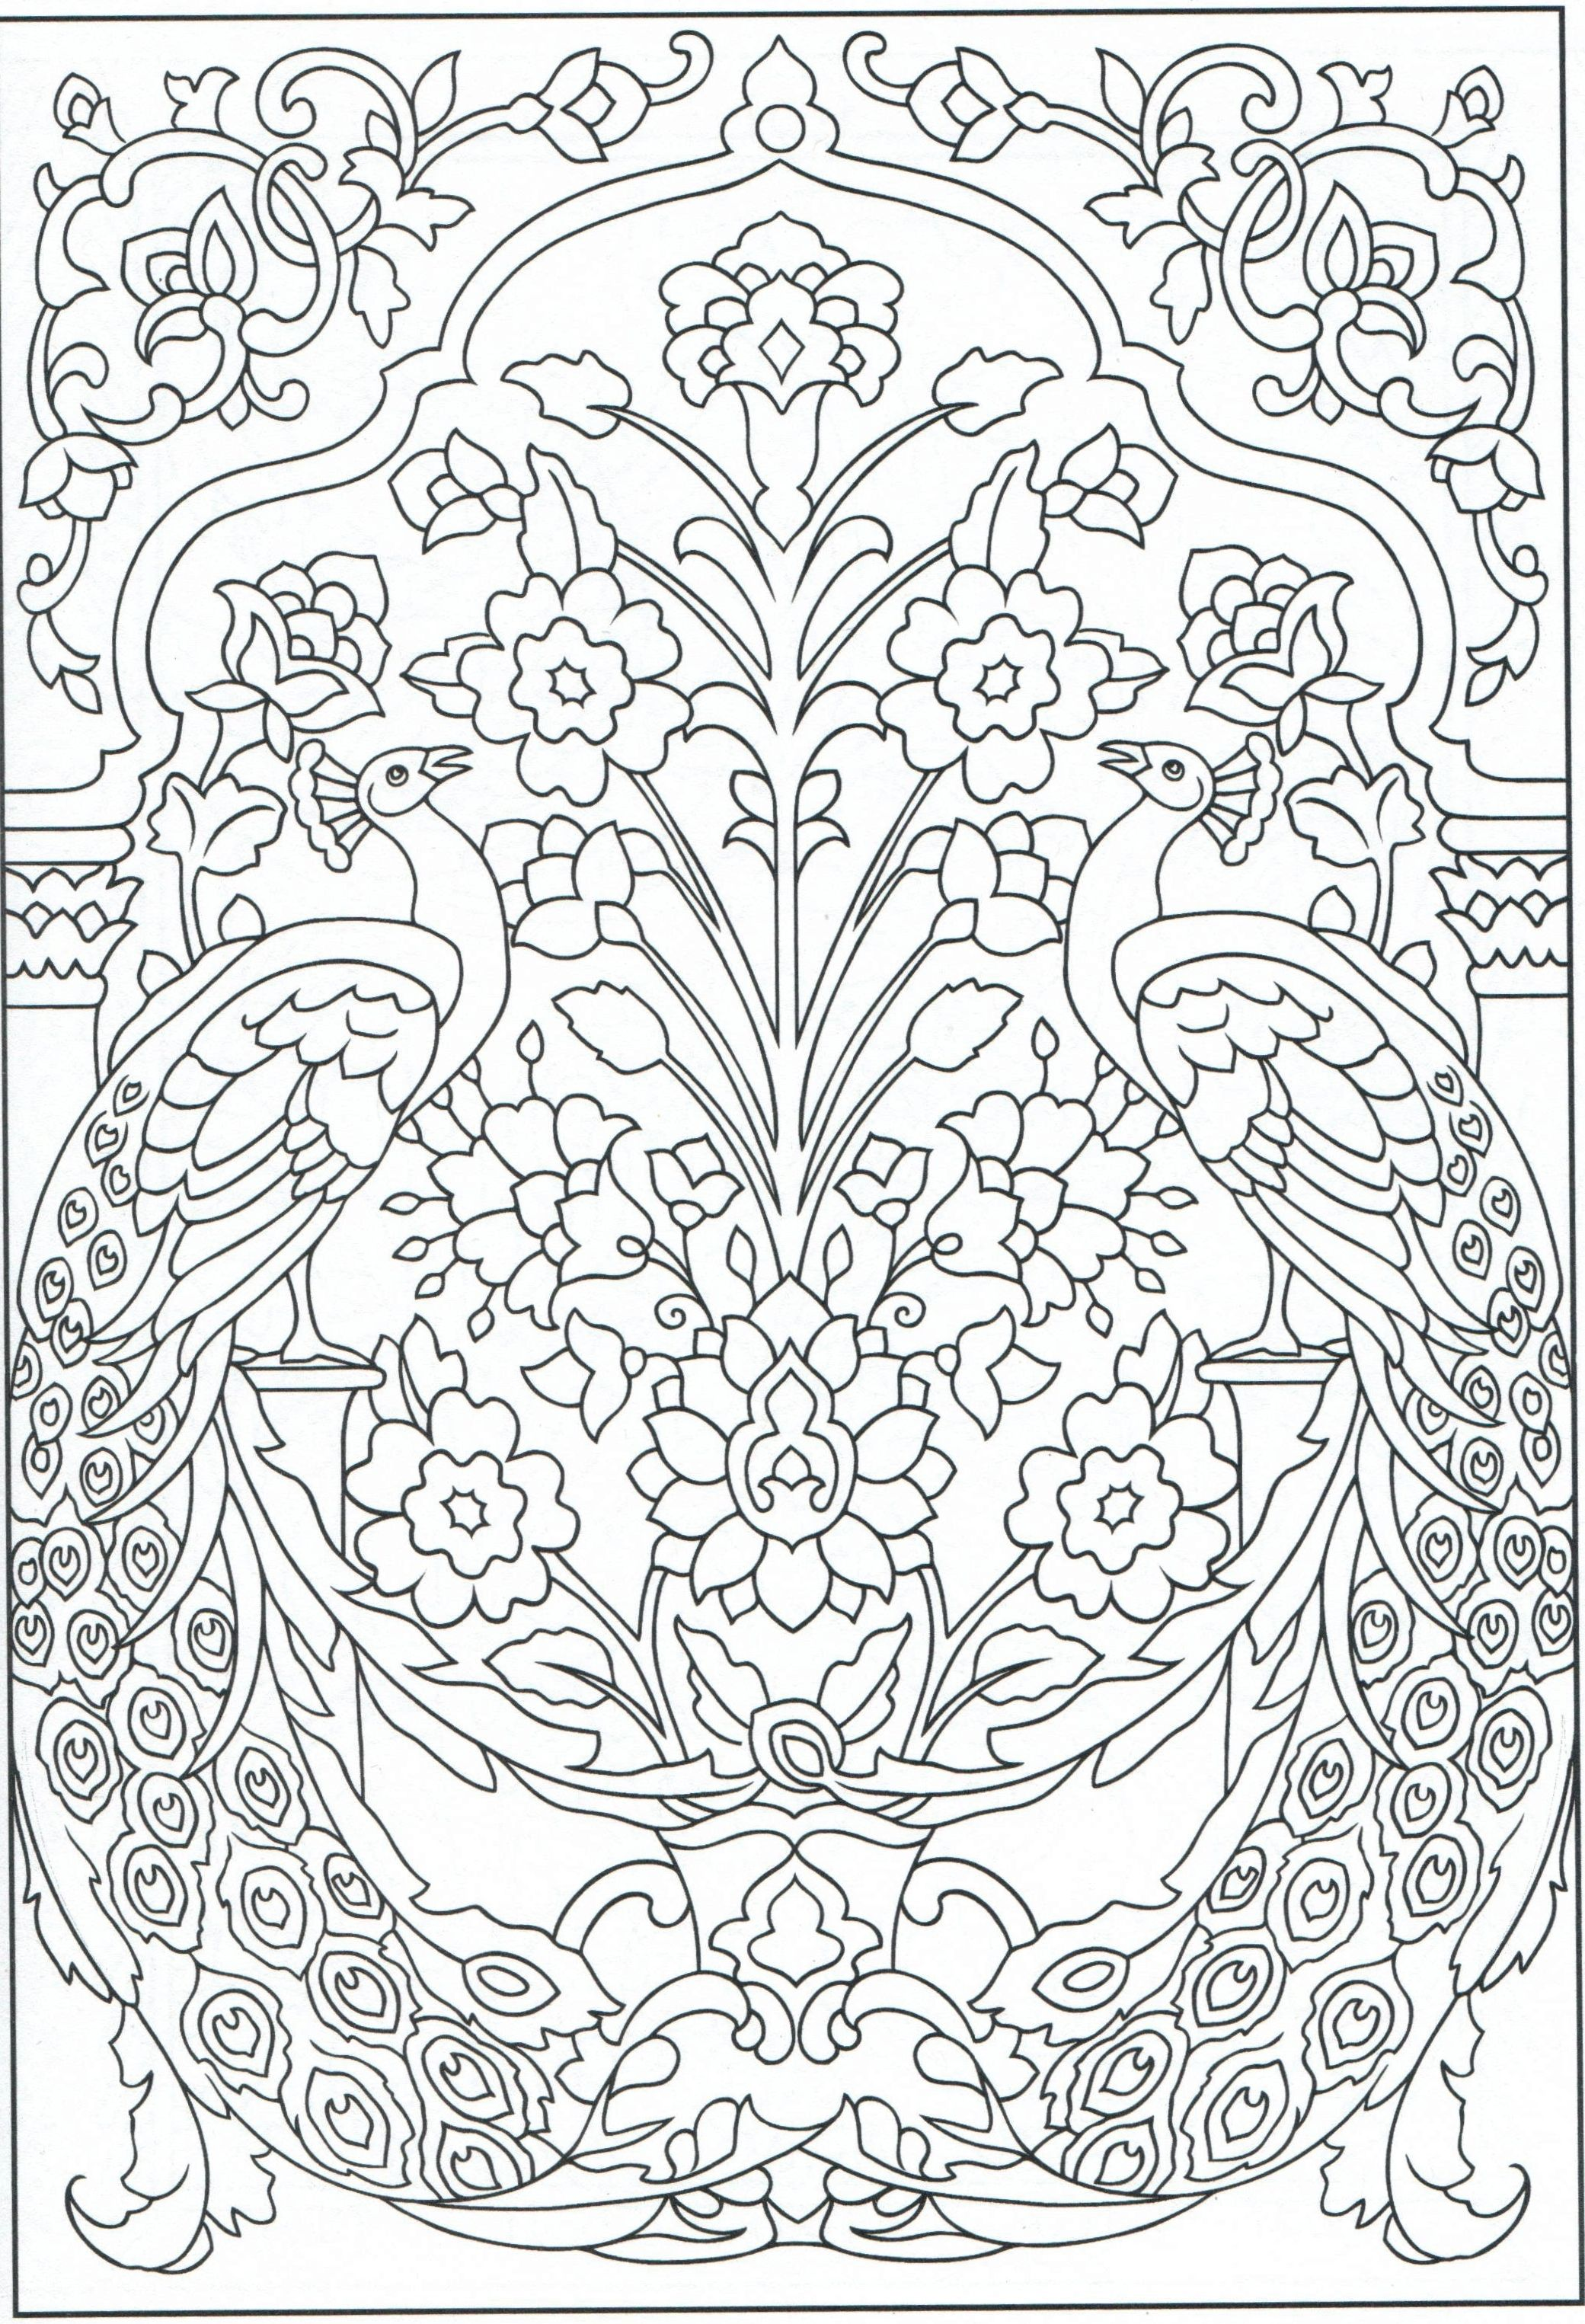 Peacock Coloring Page, For Adults 1/31 | Color Pages